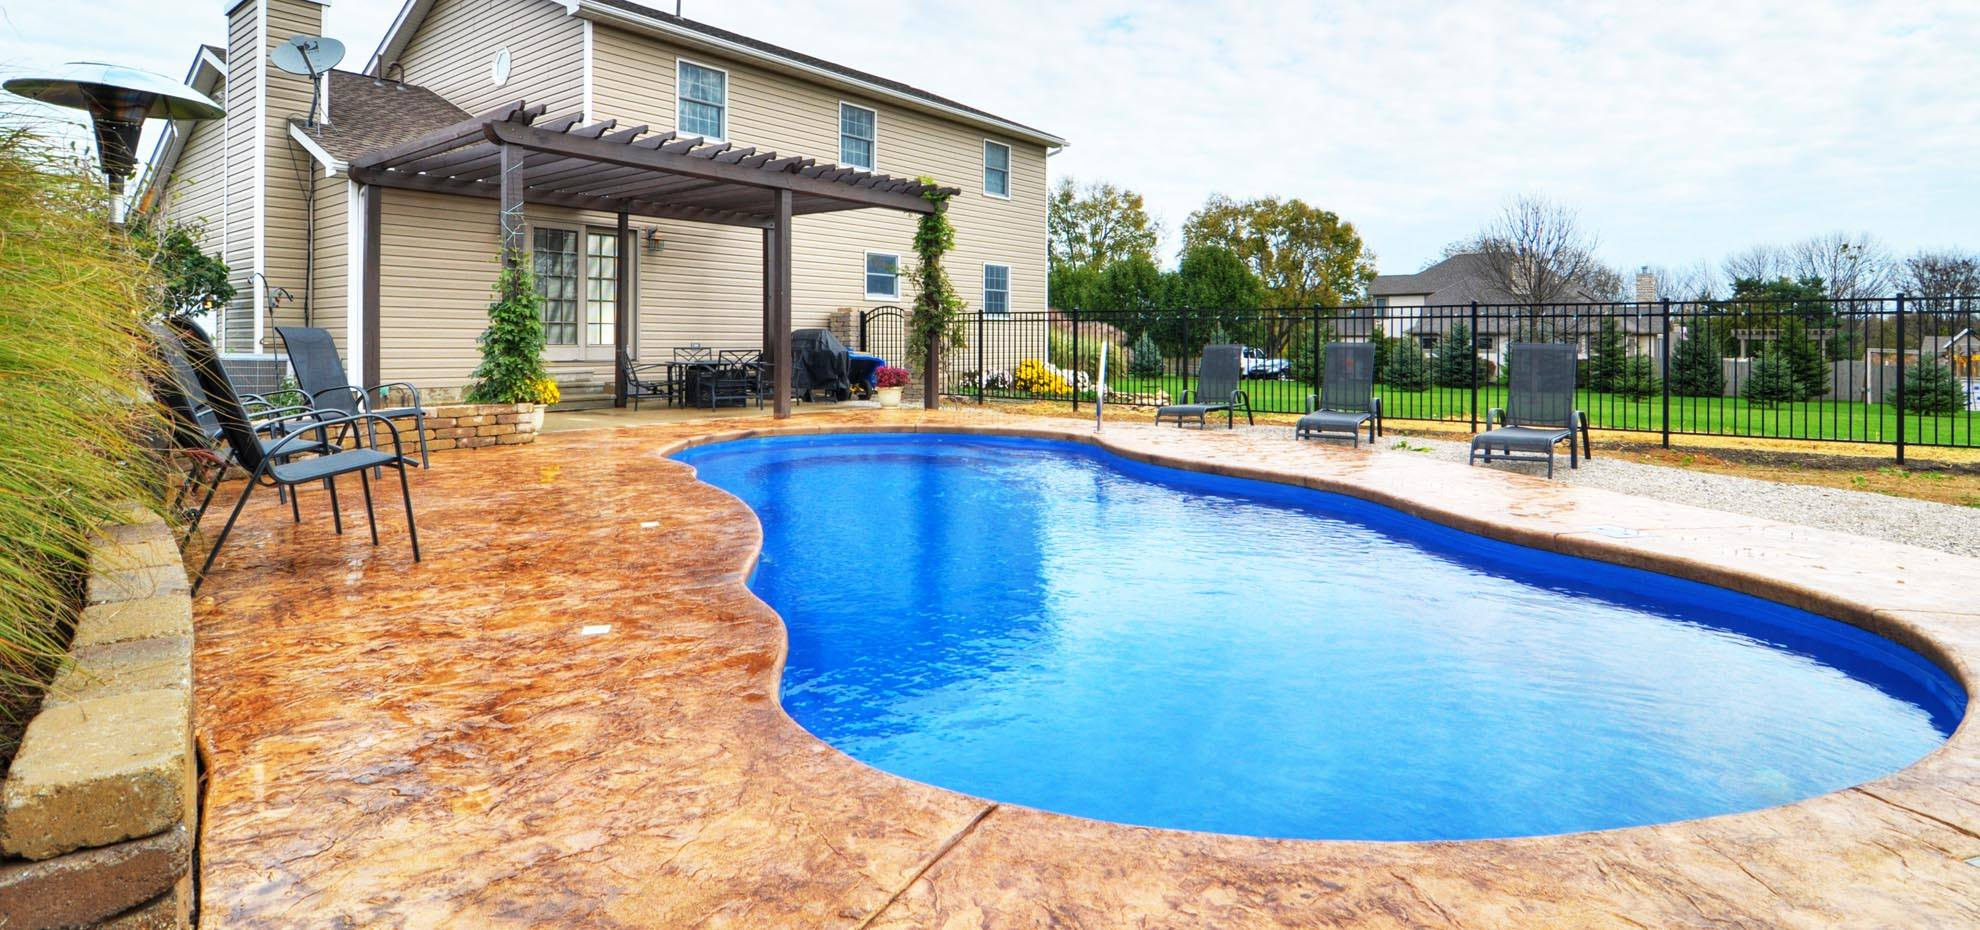 Pioneer valley fiberglass pools swimming pool quotes - Riviera fiberglass pools ...